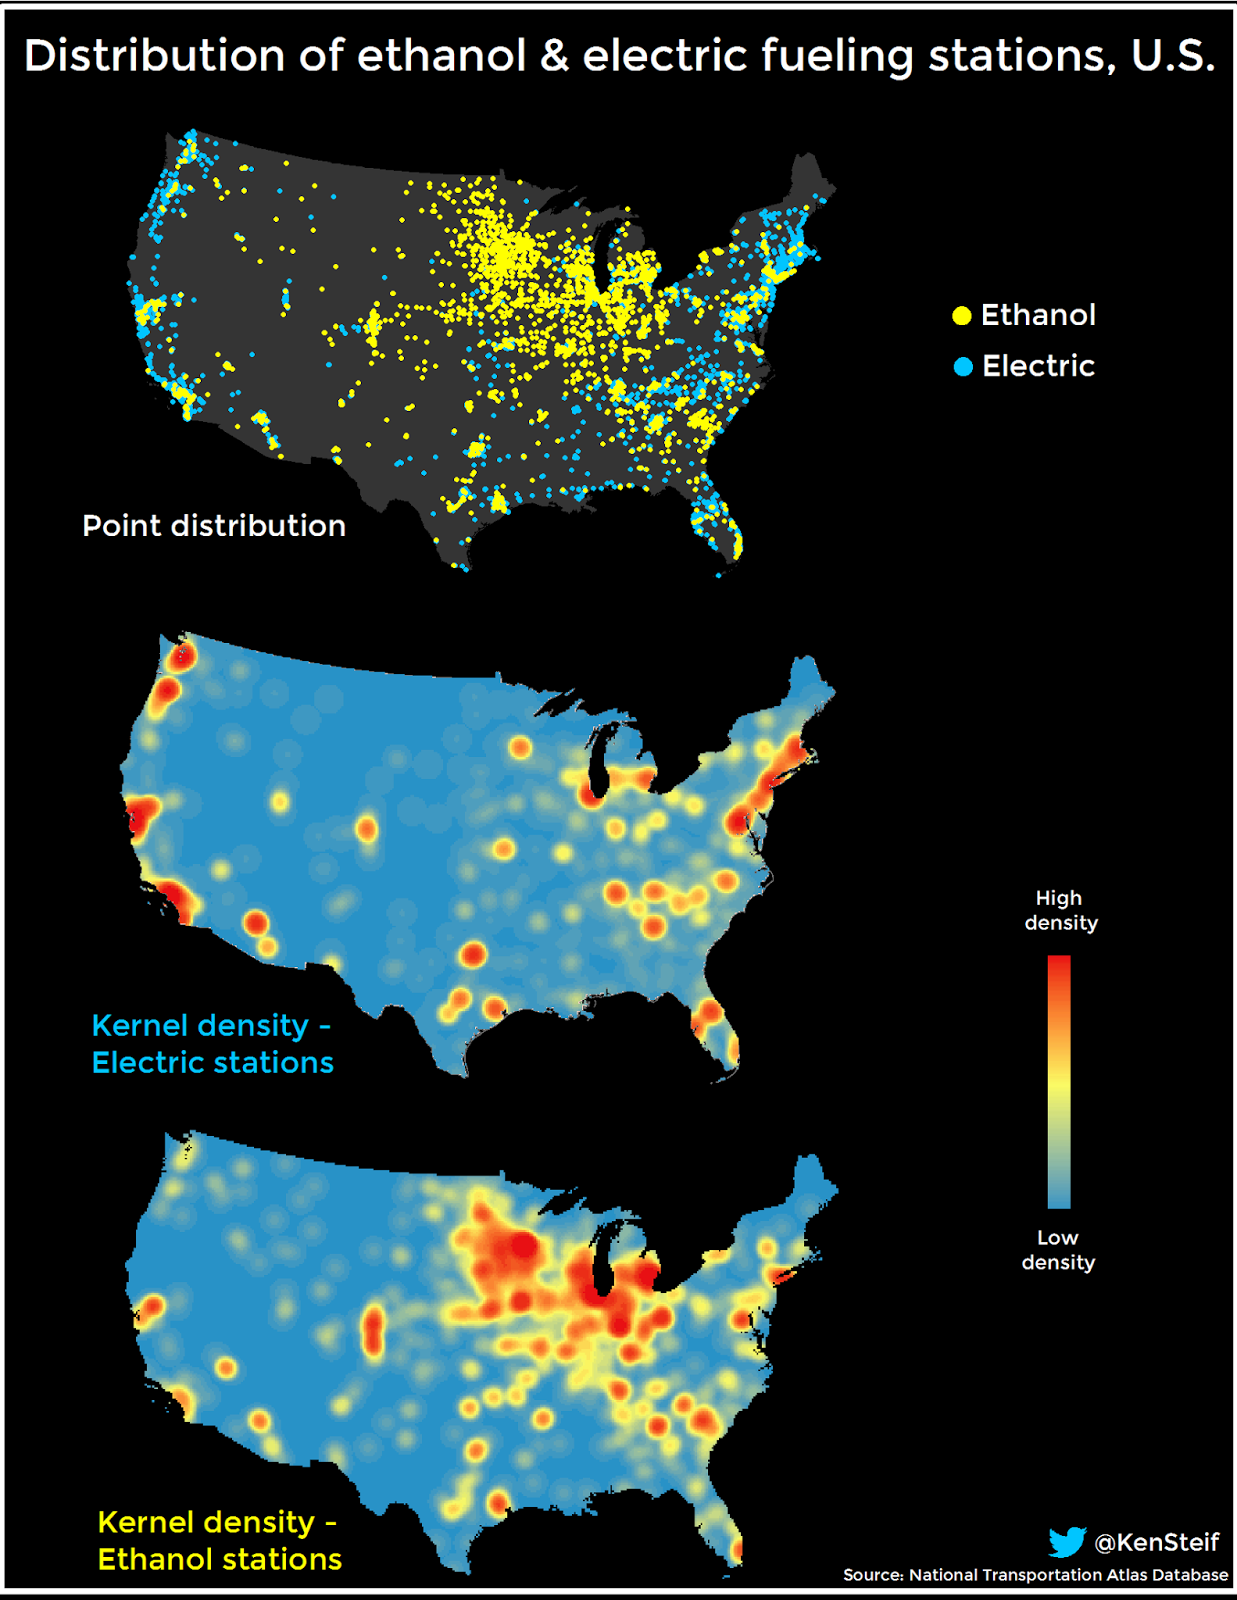 Distribution of electric and ethanol fuel stations in the US